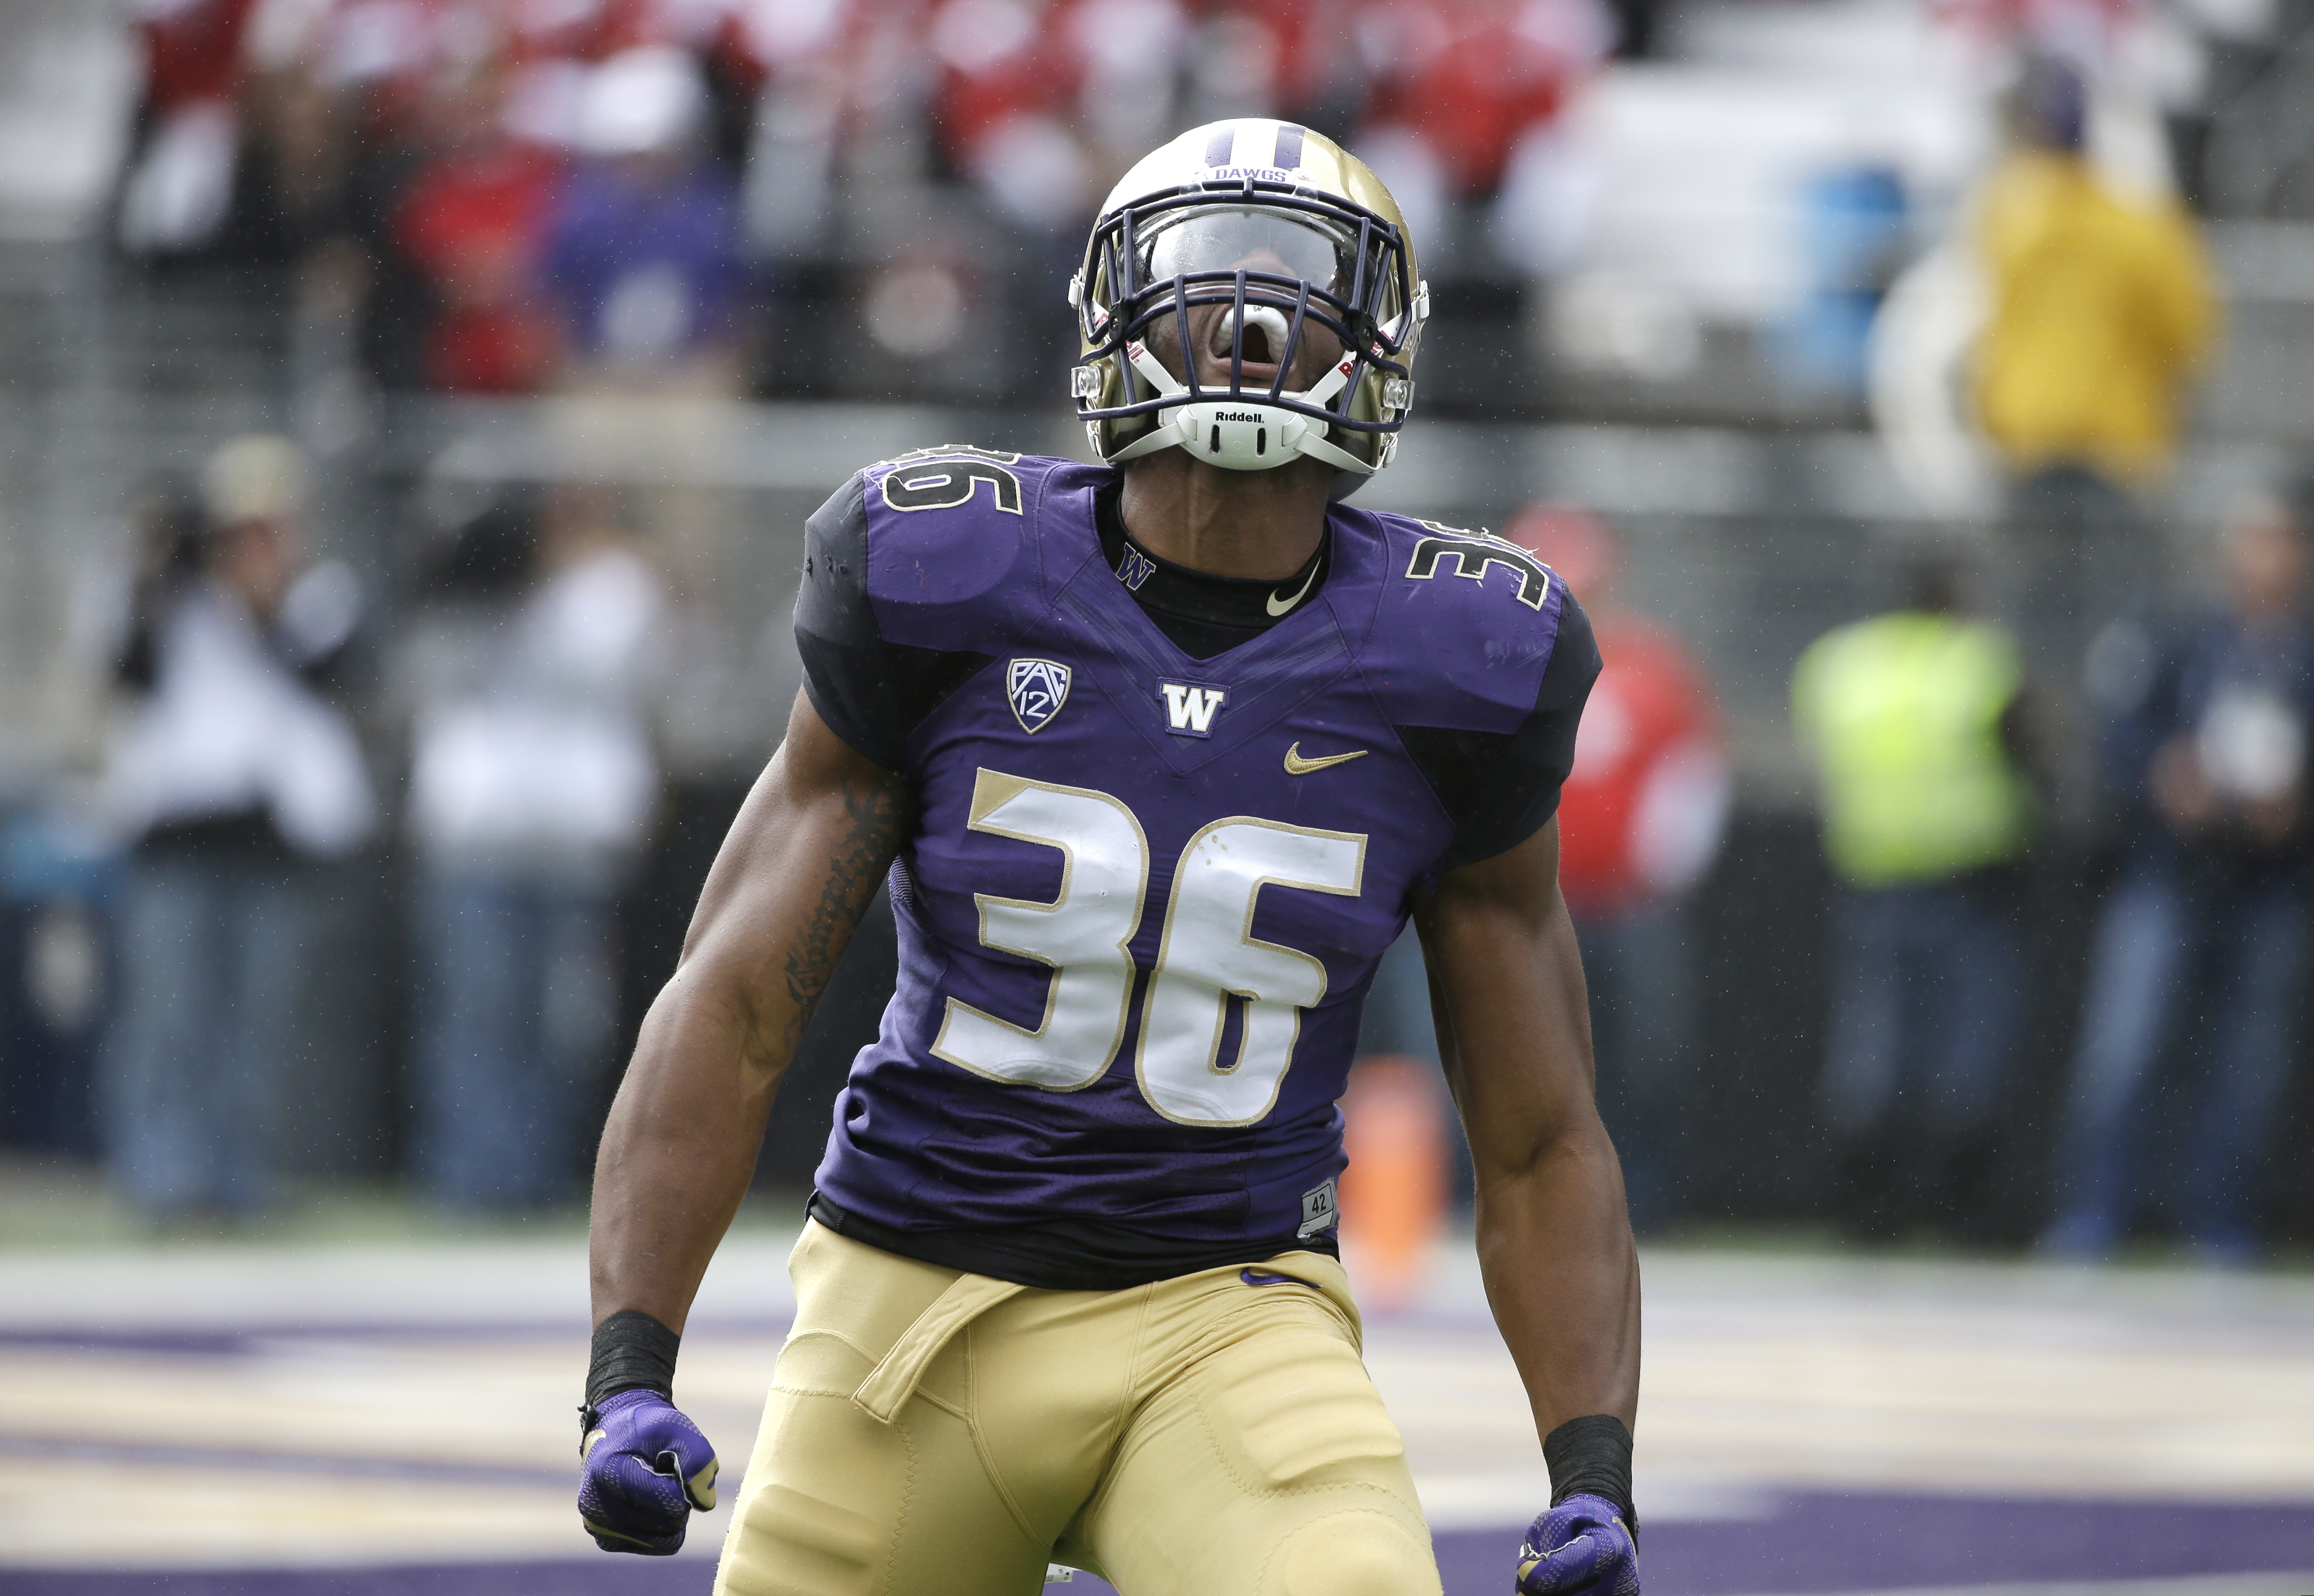 FILE - In this Sept. 3, 2016, file photo, Washington's Azeem Victor reacts to a play against Rutgers in the first half of an NCAA college football game, in Seattle. In the midst of being the starting middle linebacker for the No. 4 team in the country, Az